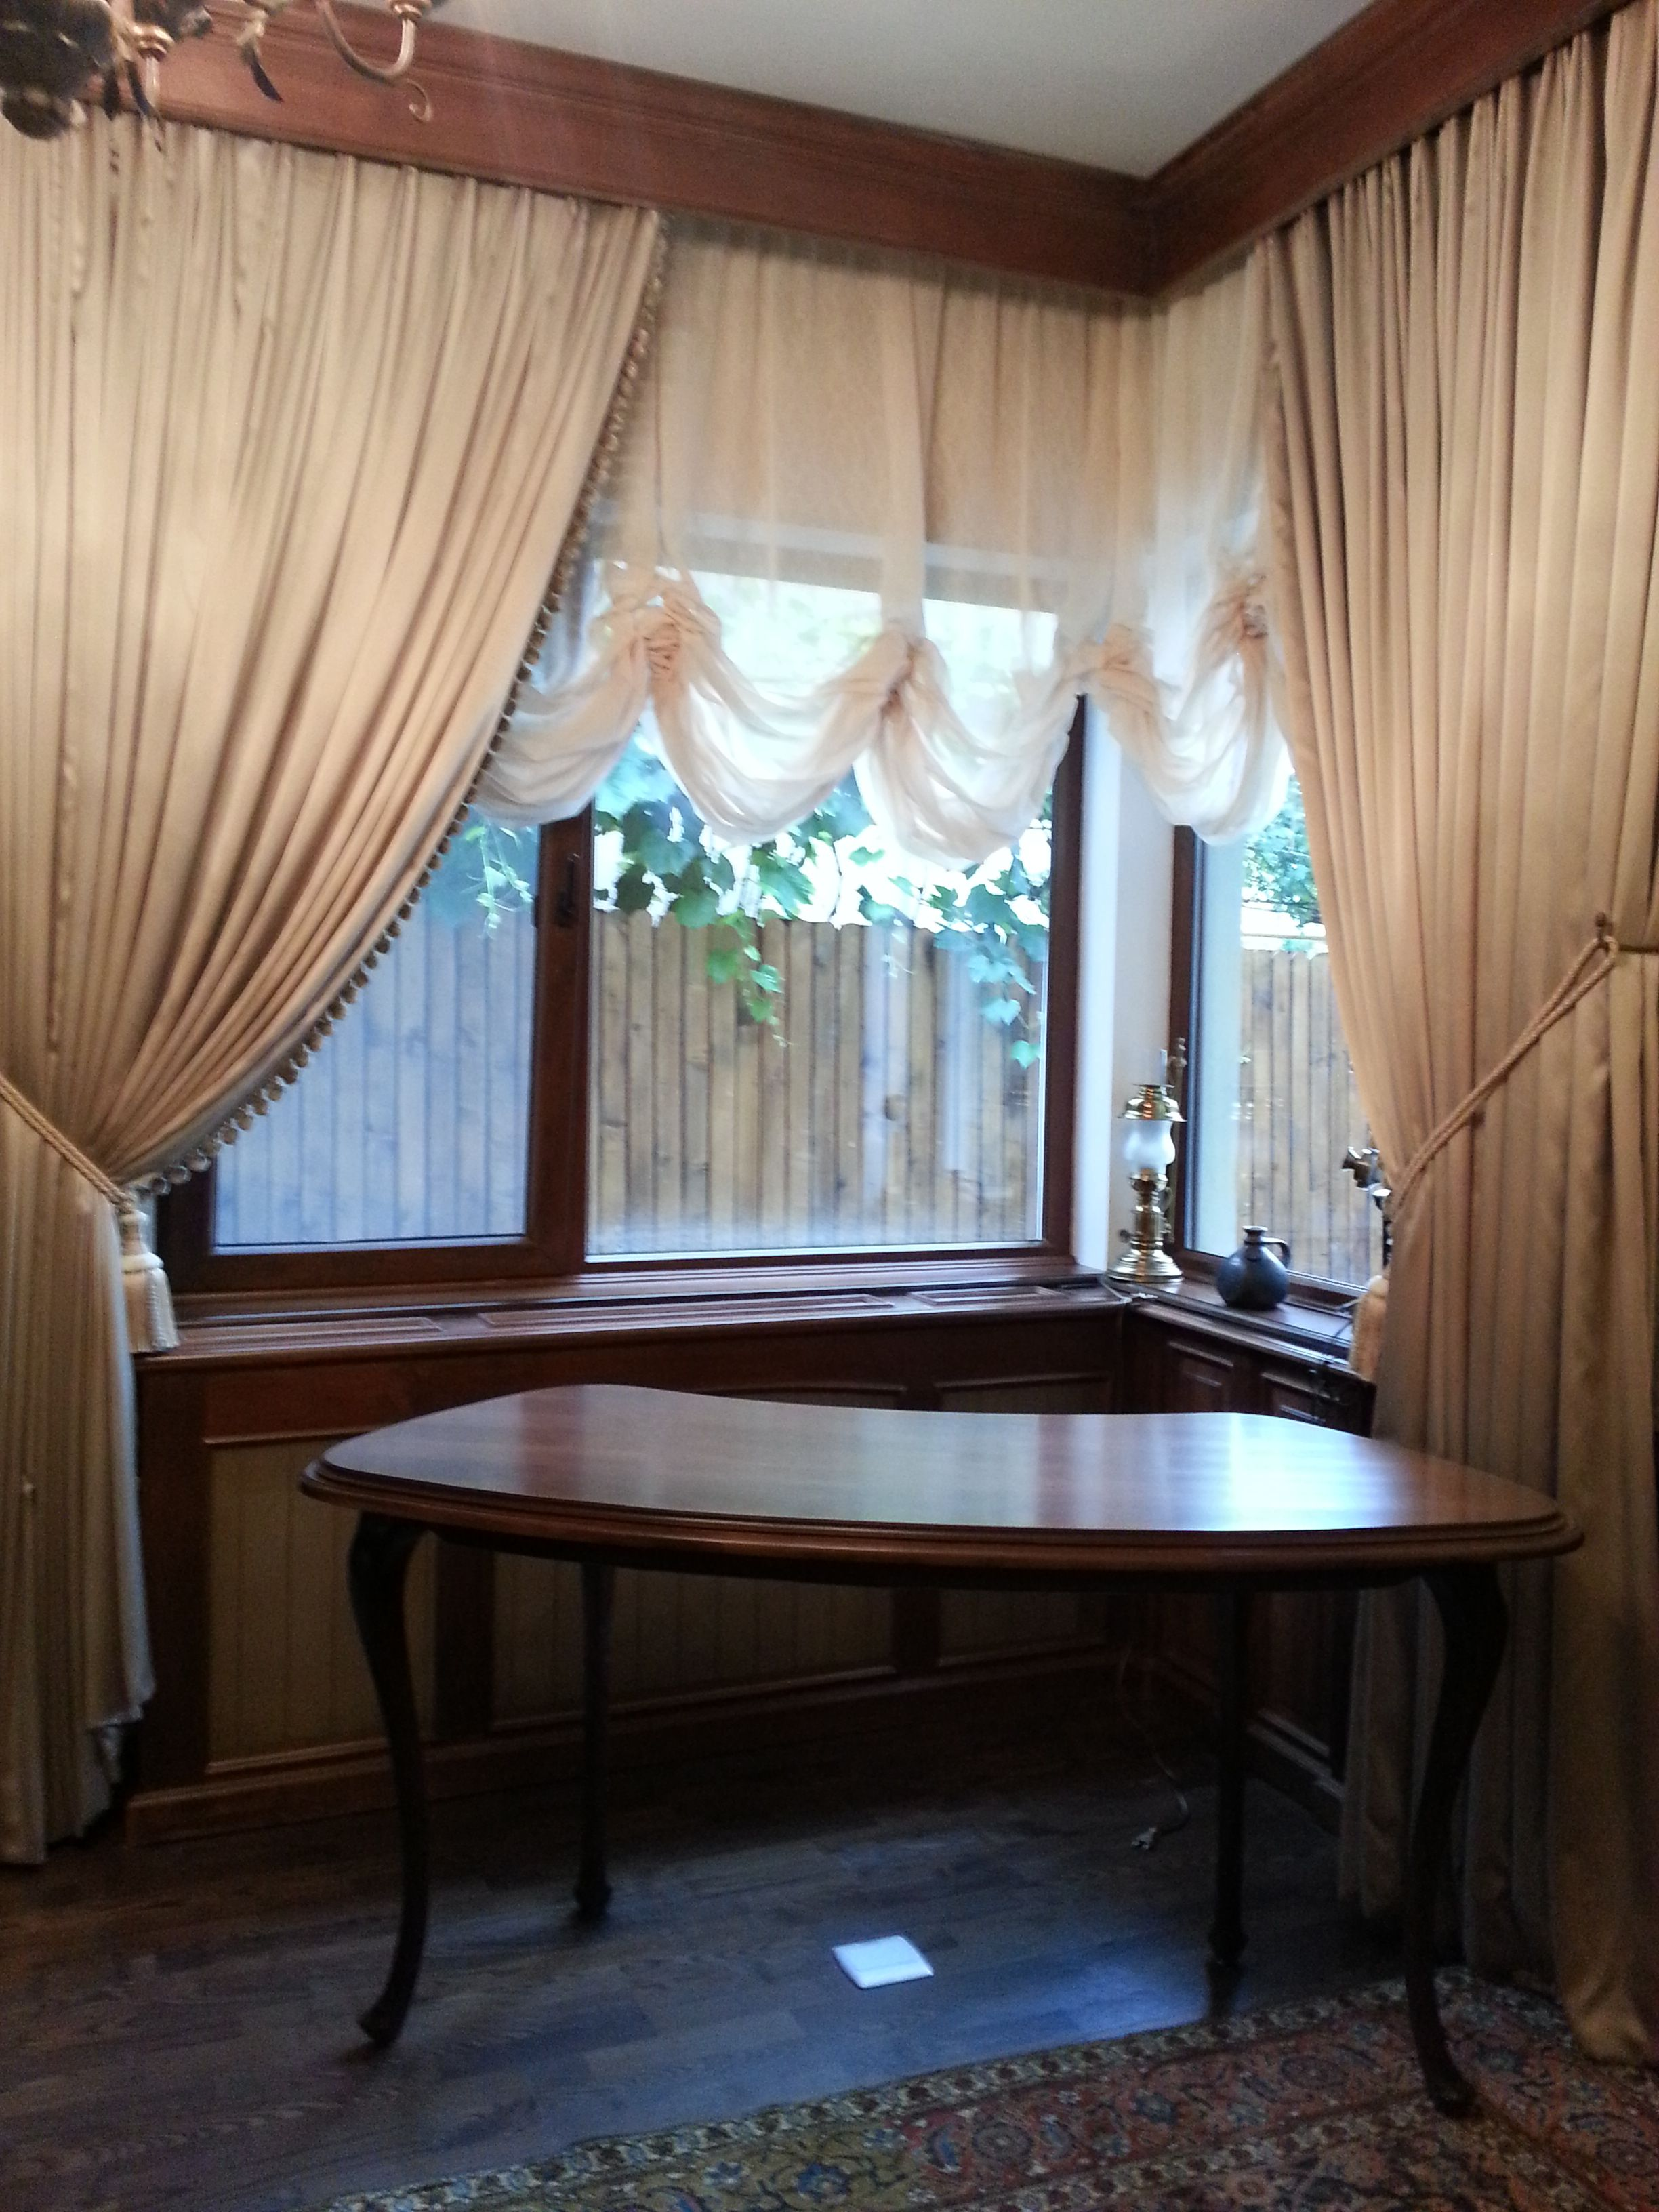 drapes and blinds style drapes and blinds curtains window coverings venetian draperie cu stor venetian and blinds picks